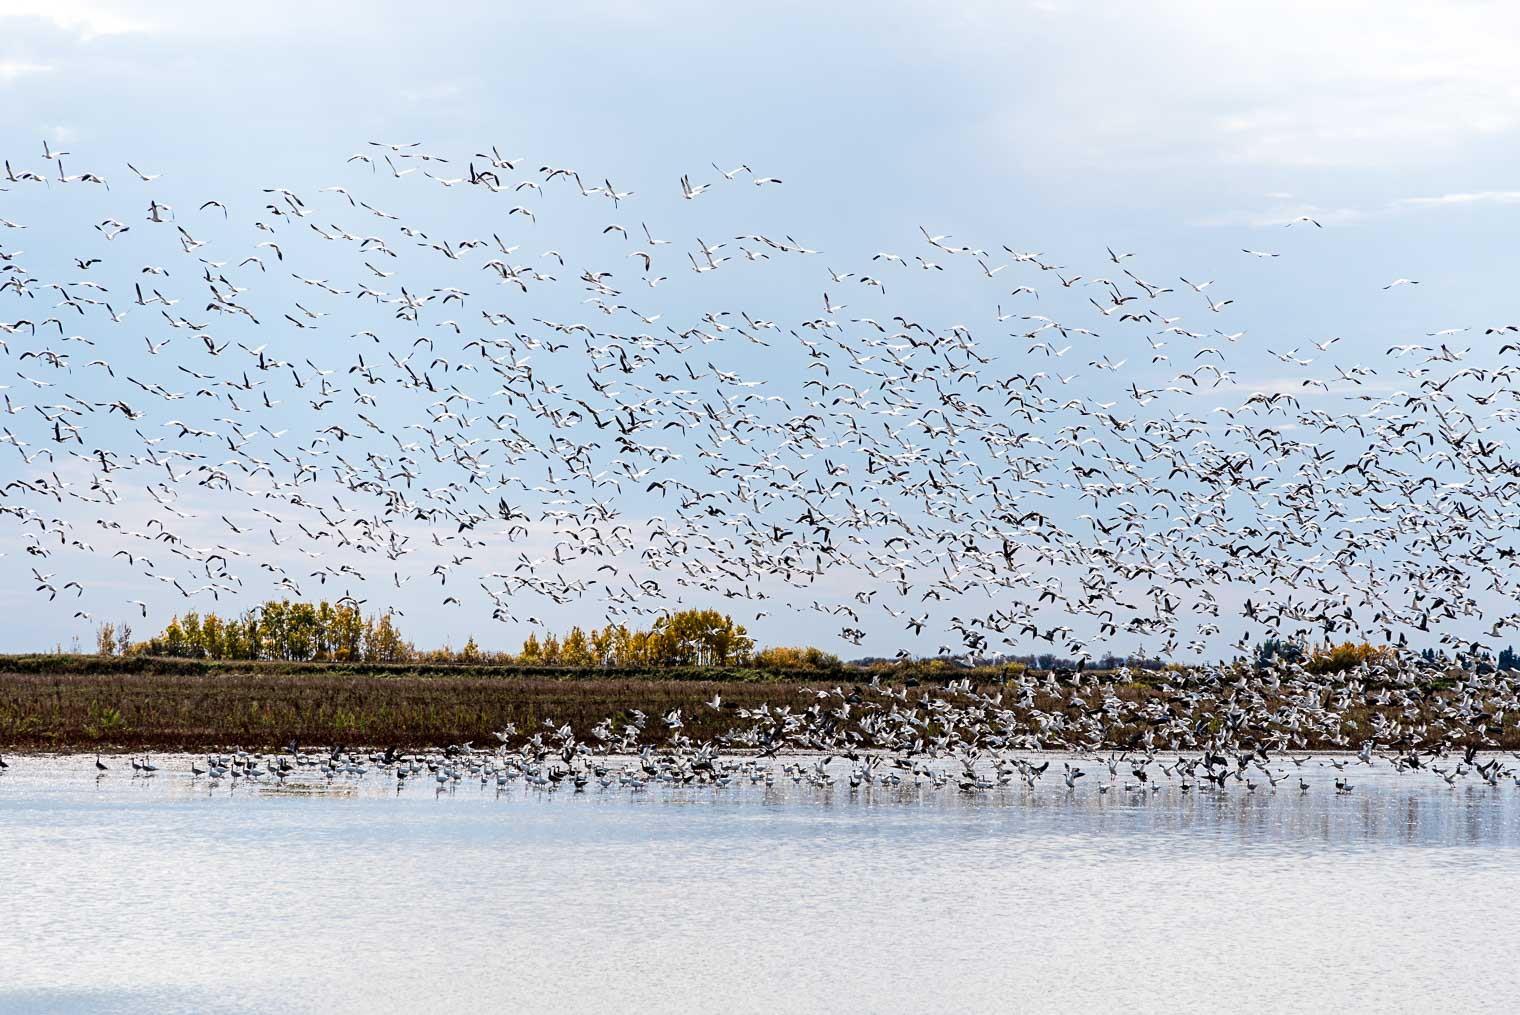 Snow Geese migration, Keeping With the Times, Barb Brookbank